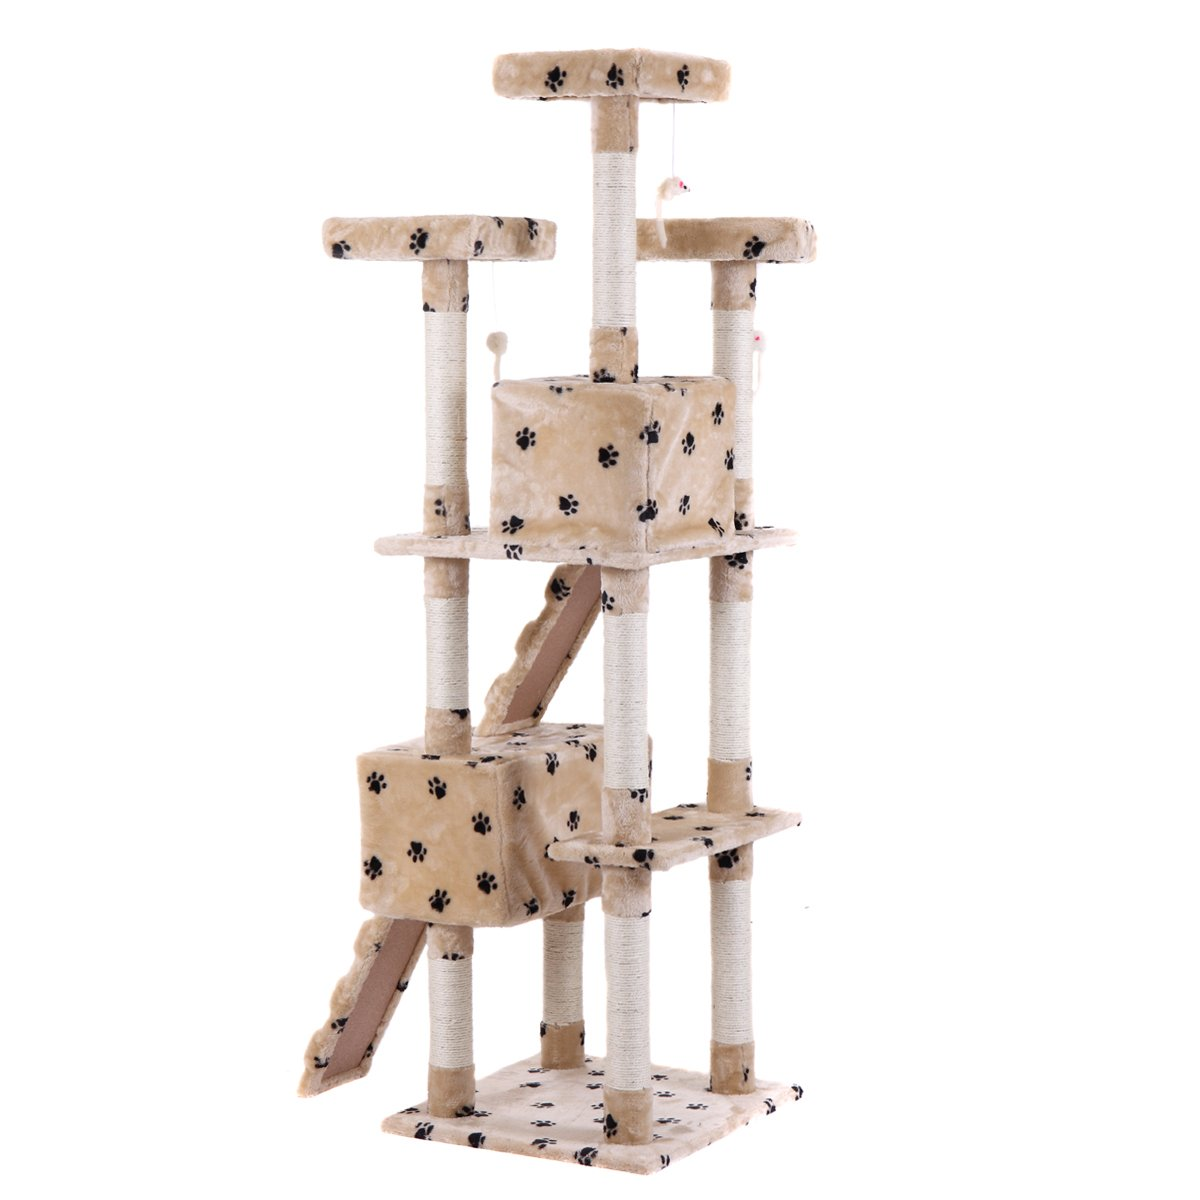 LAZYMOON 67'' Cat Tree 4-Tier Tower Condo Play House Furniture w/ Scratching posts and Toy Mouse Beige with Footprint by LAZYMOON (Image #3)